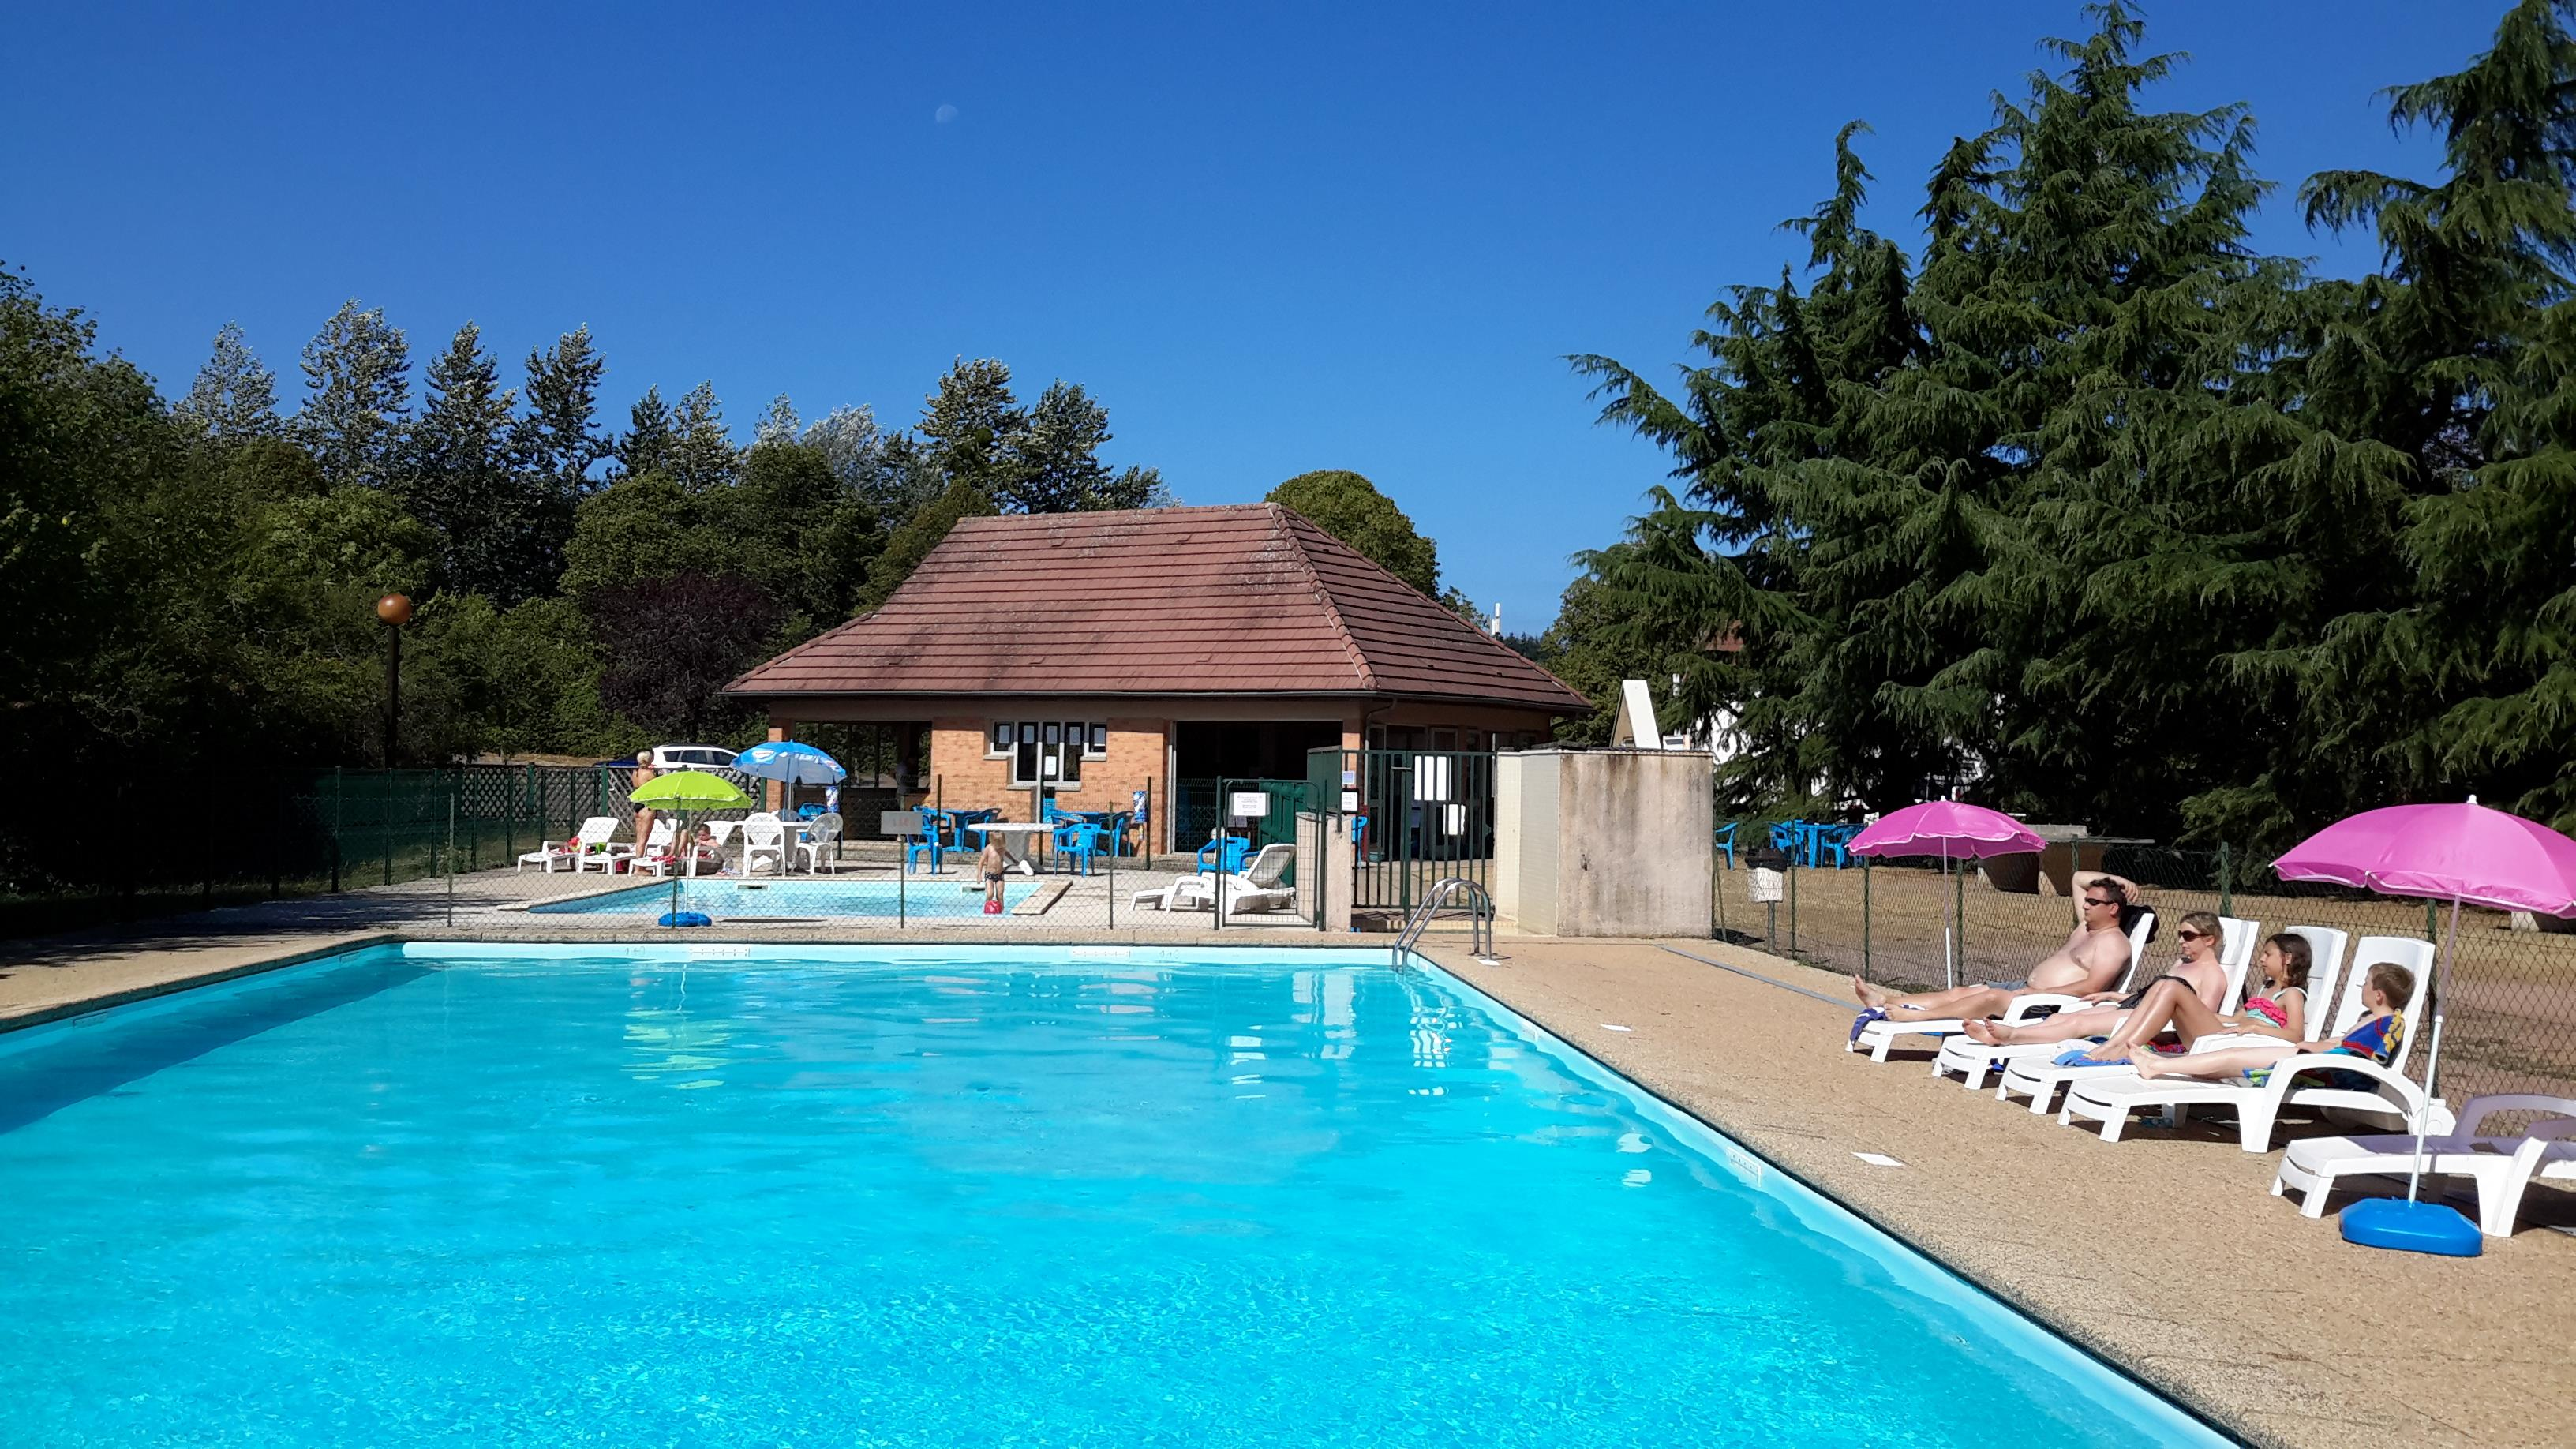 Camping de saulieu camping qualit for Site piscine